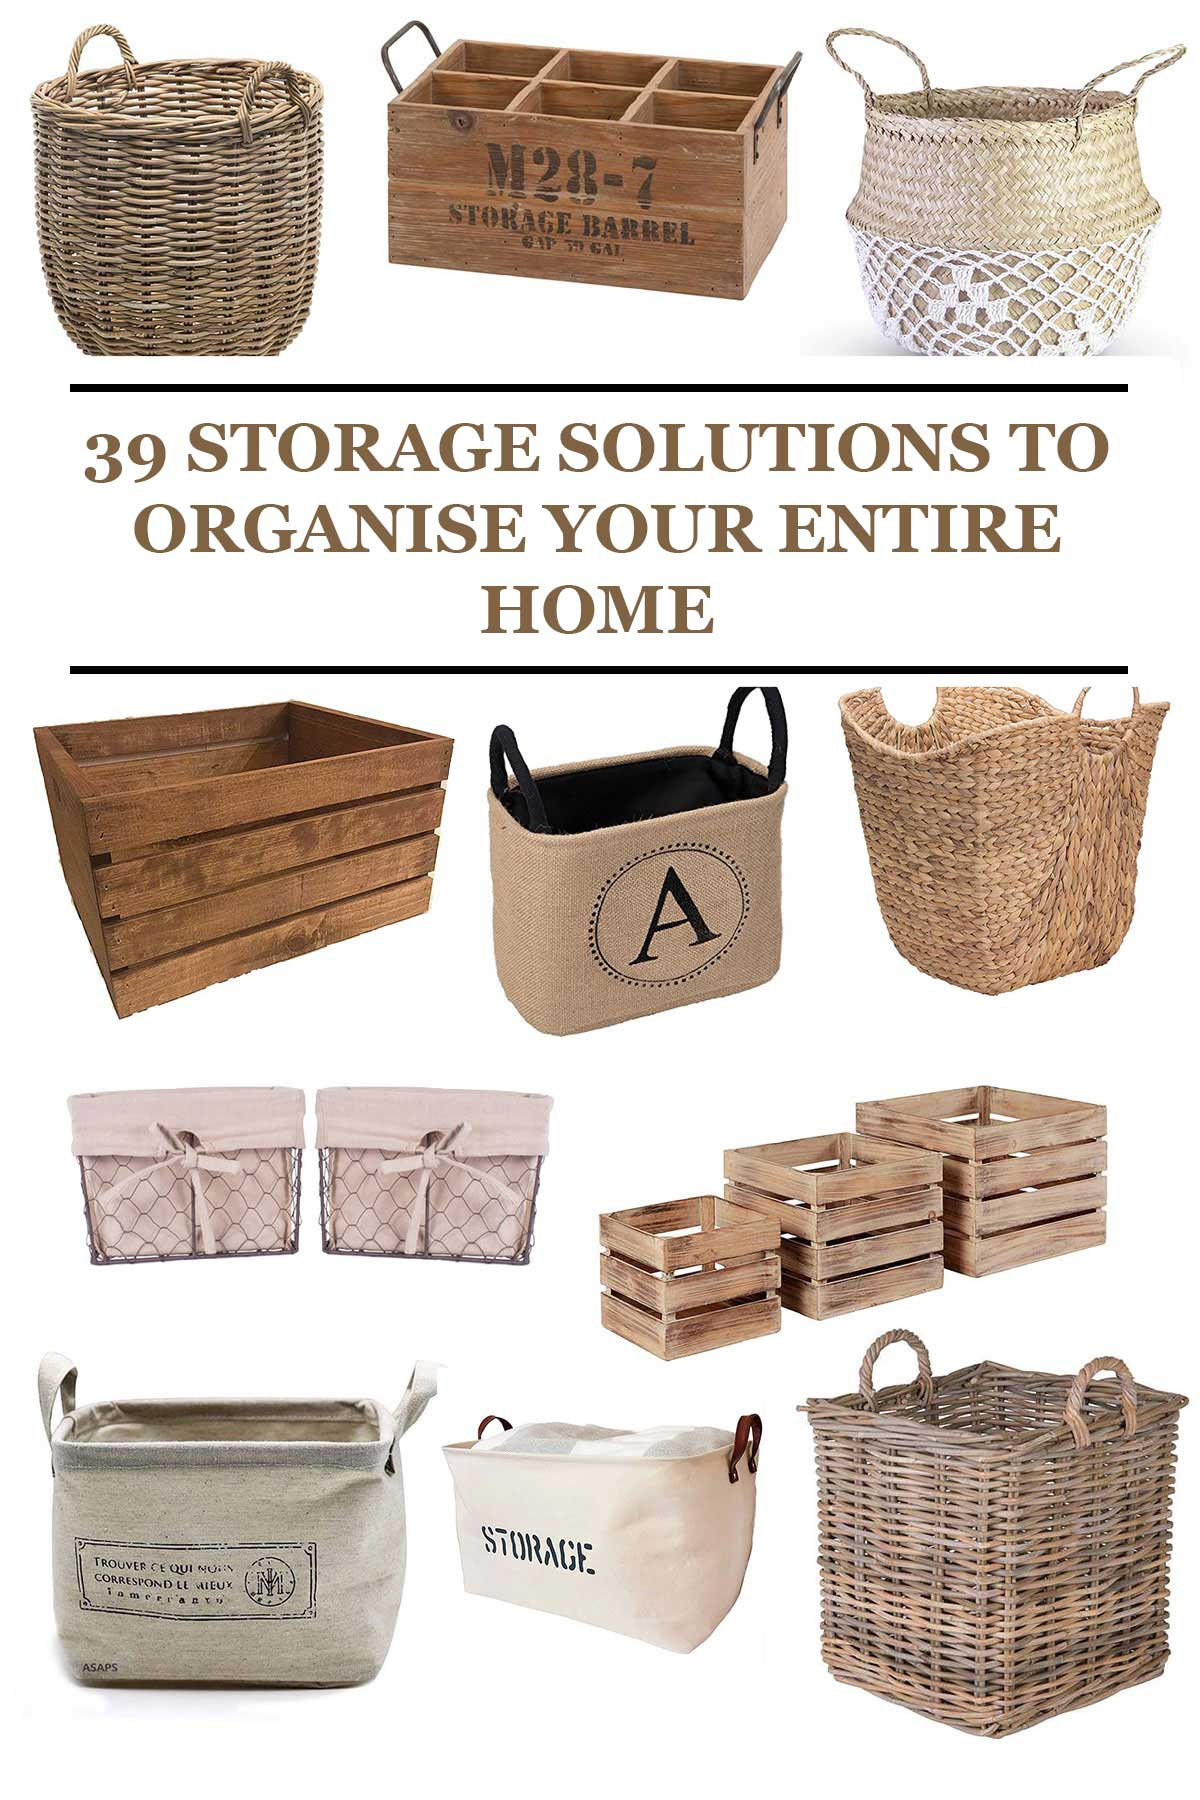 39 STORAGE SOLUTIONS TO ORGANISE YOUR ENTIRE HOME